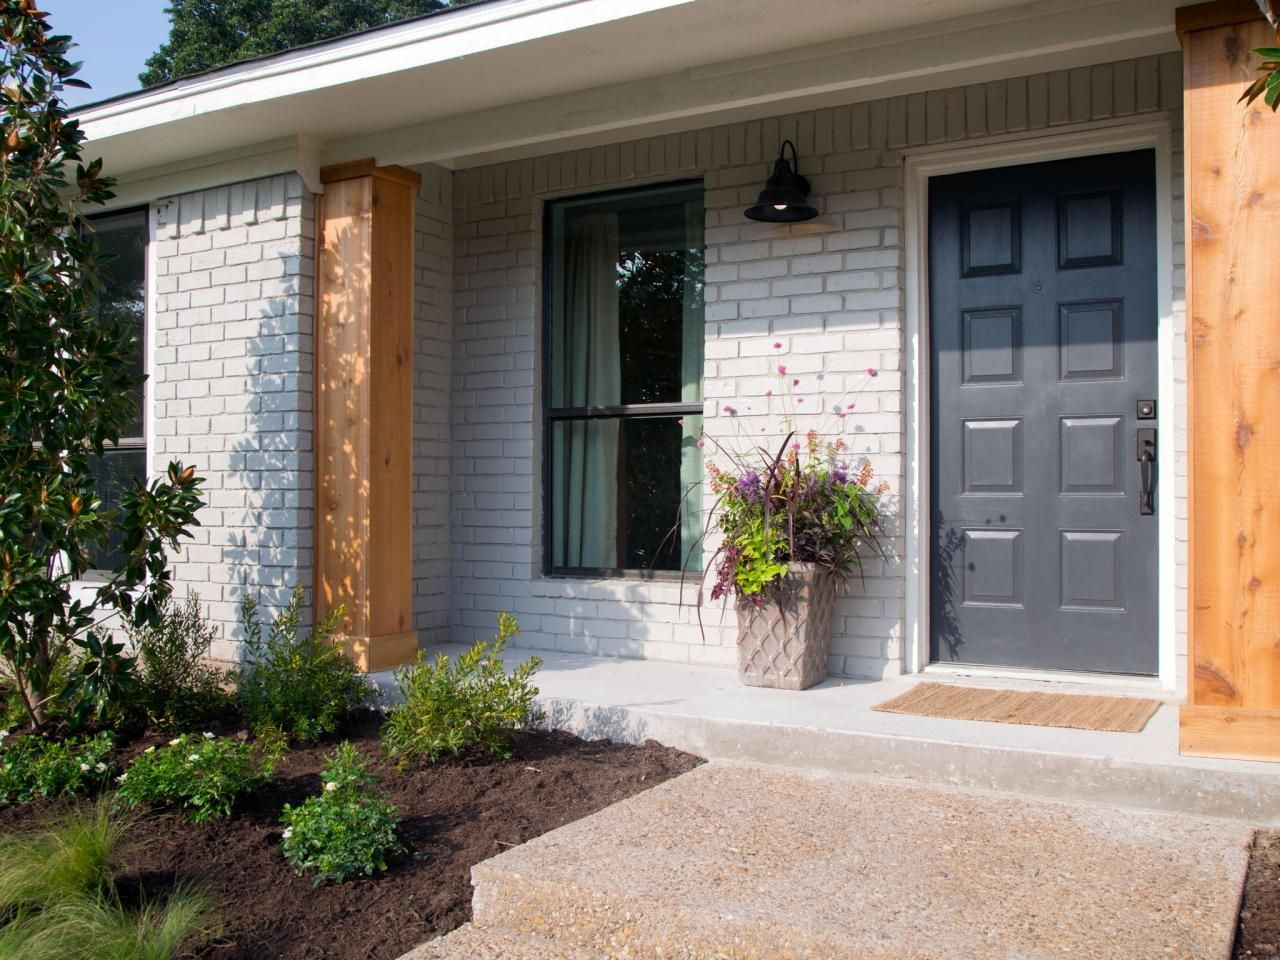 front porch post ideas also brick paint color and outdoor ... on ranch house dining room, railroad station outdoor lighting, police station outdoor lighting, apartment complex outdoor lighting, ranch house fireplaces, church outdoor lighting, farm outdoor lighting, ranch house ceiling, cowboy outdoor lighting, ranch house fencing, ranch house walkways, ranch house floor, ranch house plumbing, ranch house weddings, home outdoor lighting, ranch house light fixtures, log cabin outdoor lighting, cottage outdoor lighting, ranch house furniture, ranch house doors,